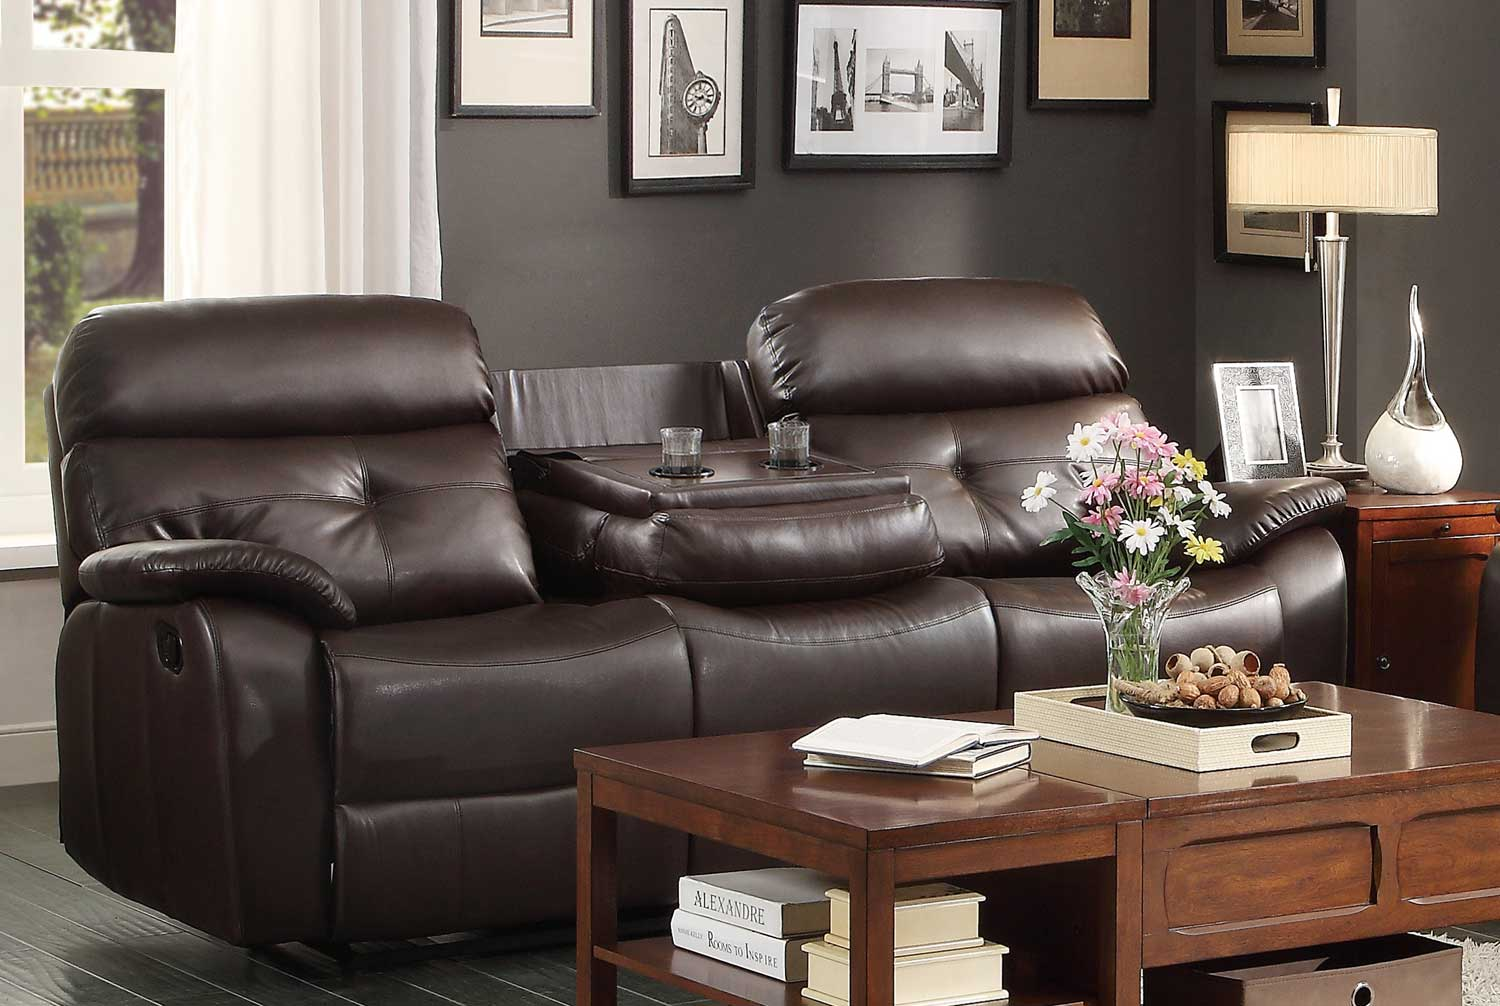 Picture of: Homelegance Evana Double Reclining Sofa With Drop Down Center Cup Holders Dark Brown Bonded Leather Match 8539 3 At Homelement Com